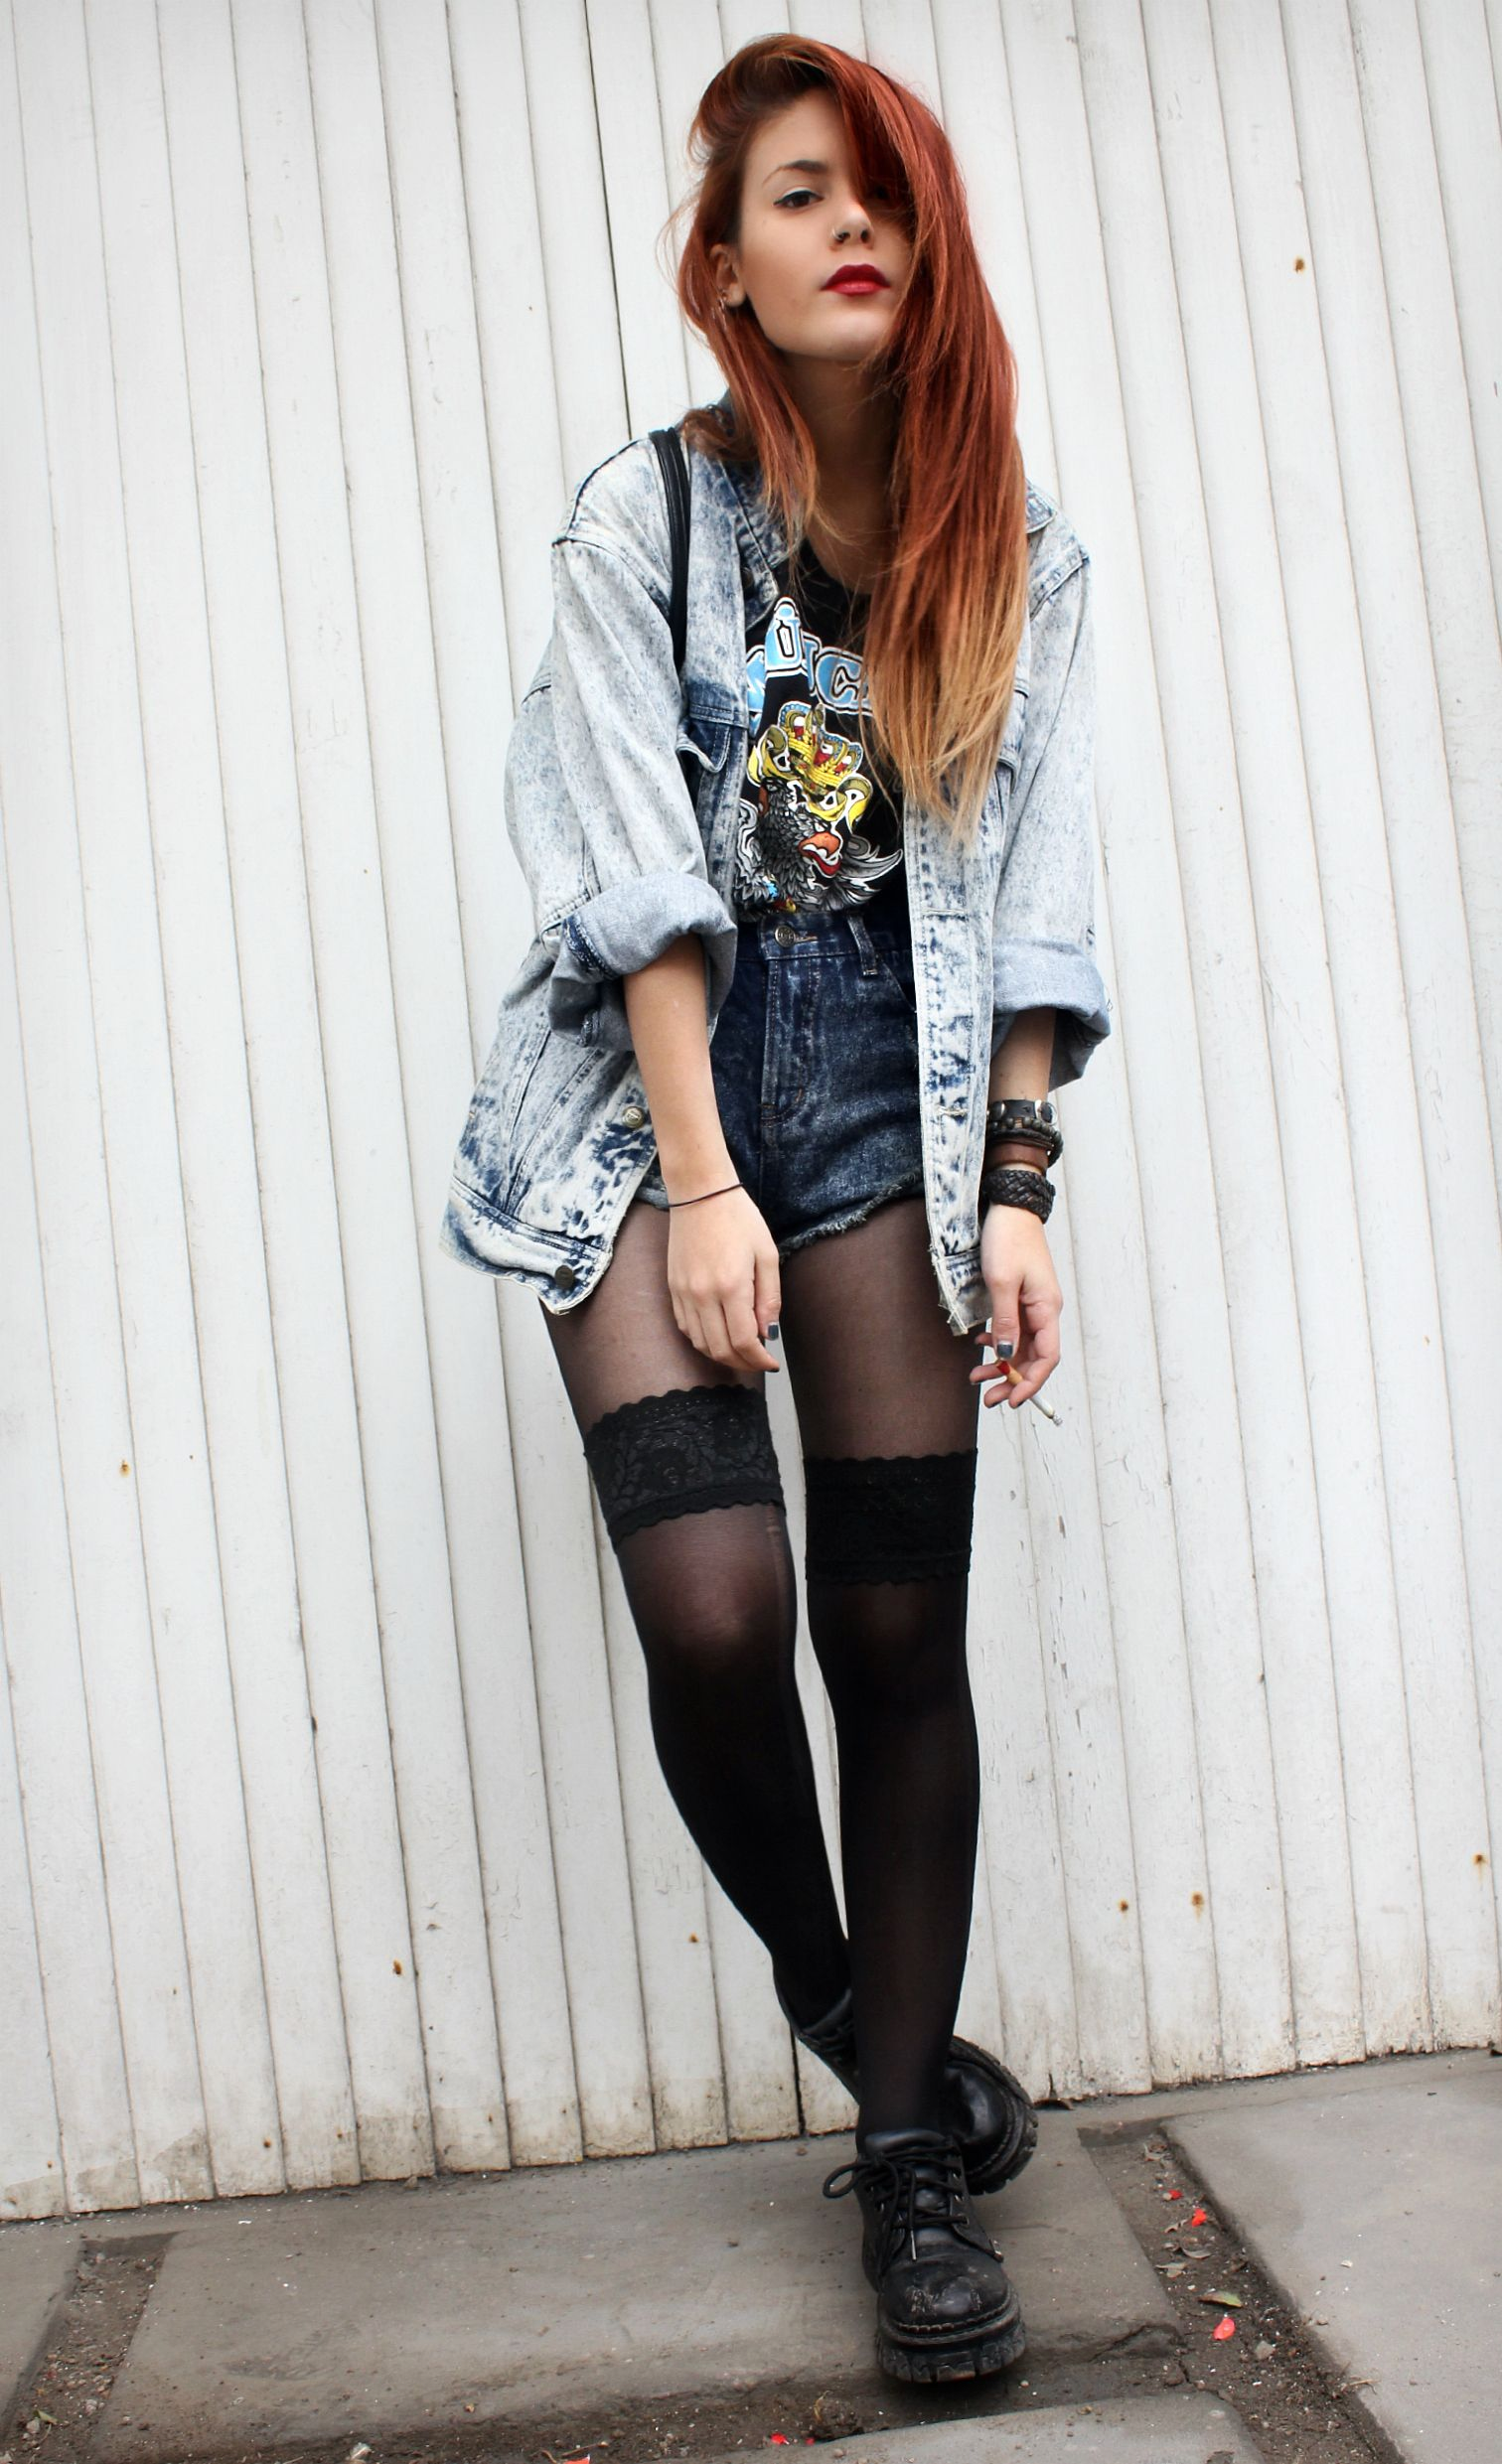 7361ab5c7a32 Vintage denim jacket with vintage rock band tee, denim shorts & vintage  shoes